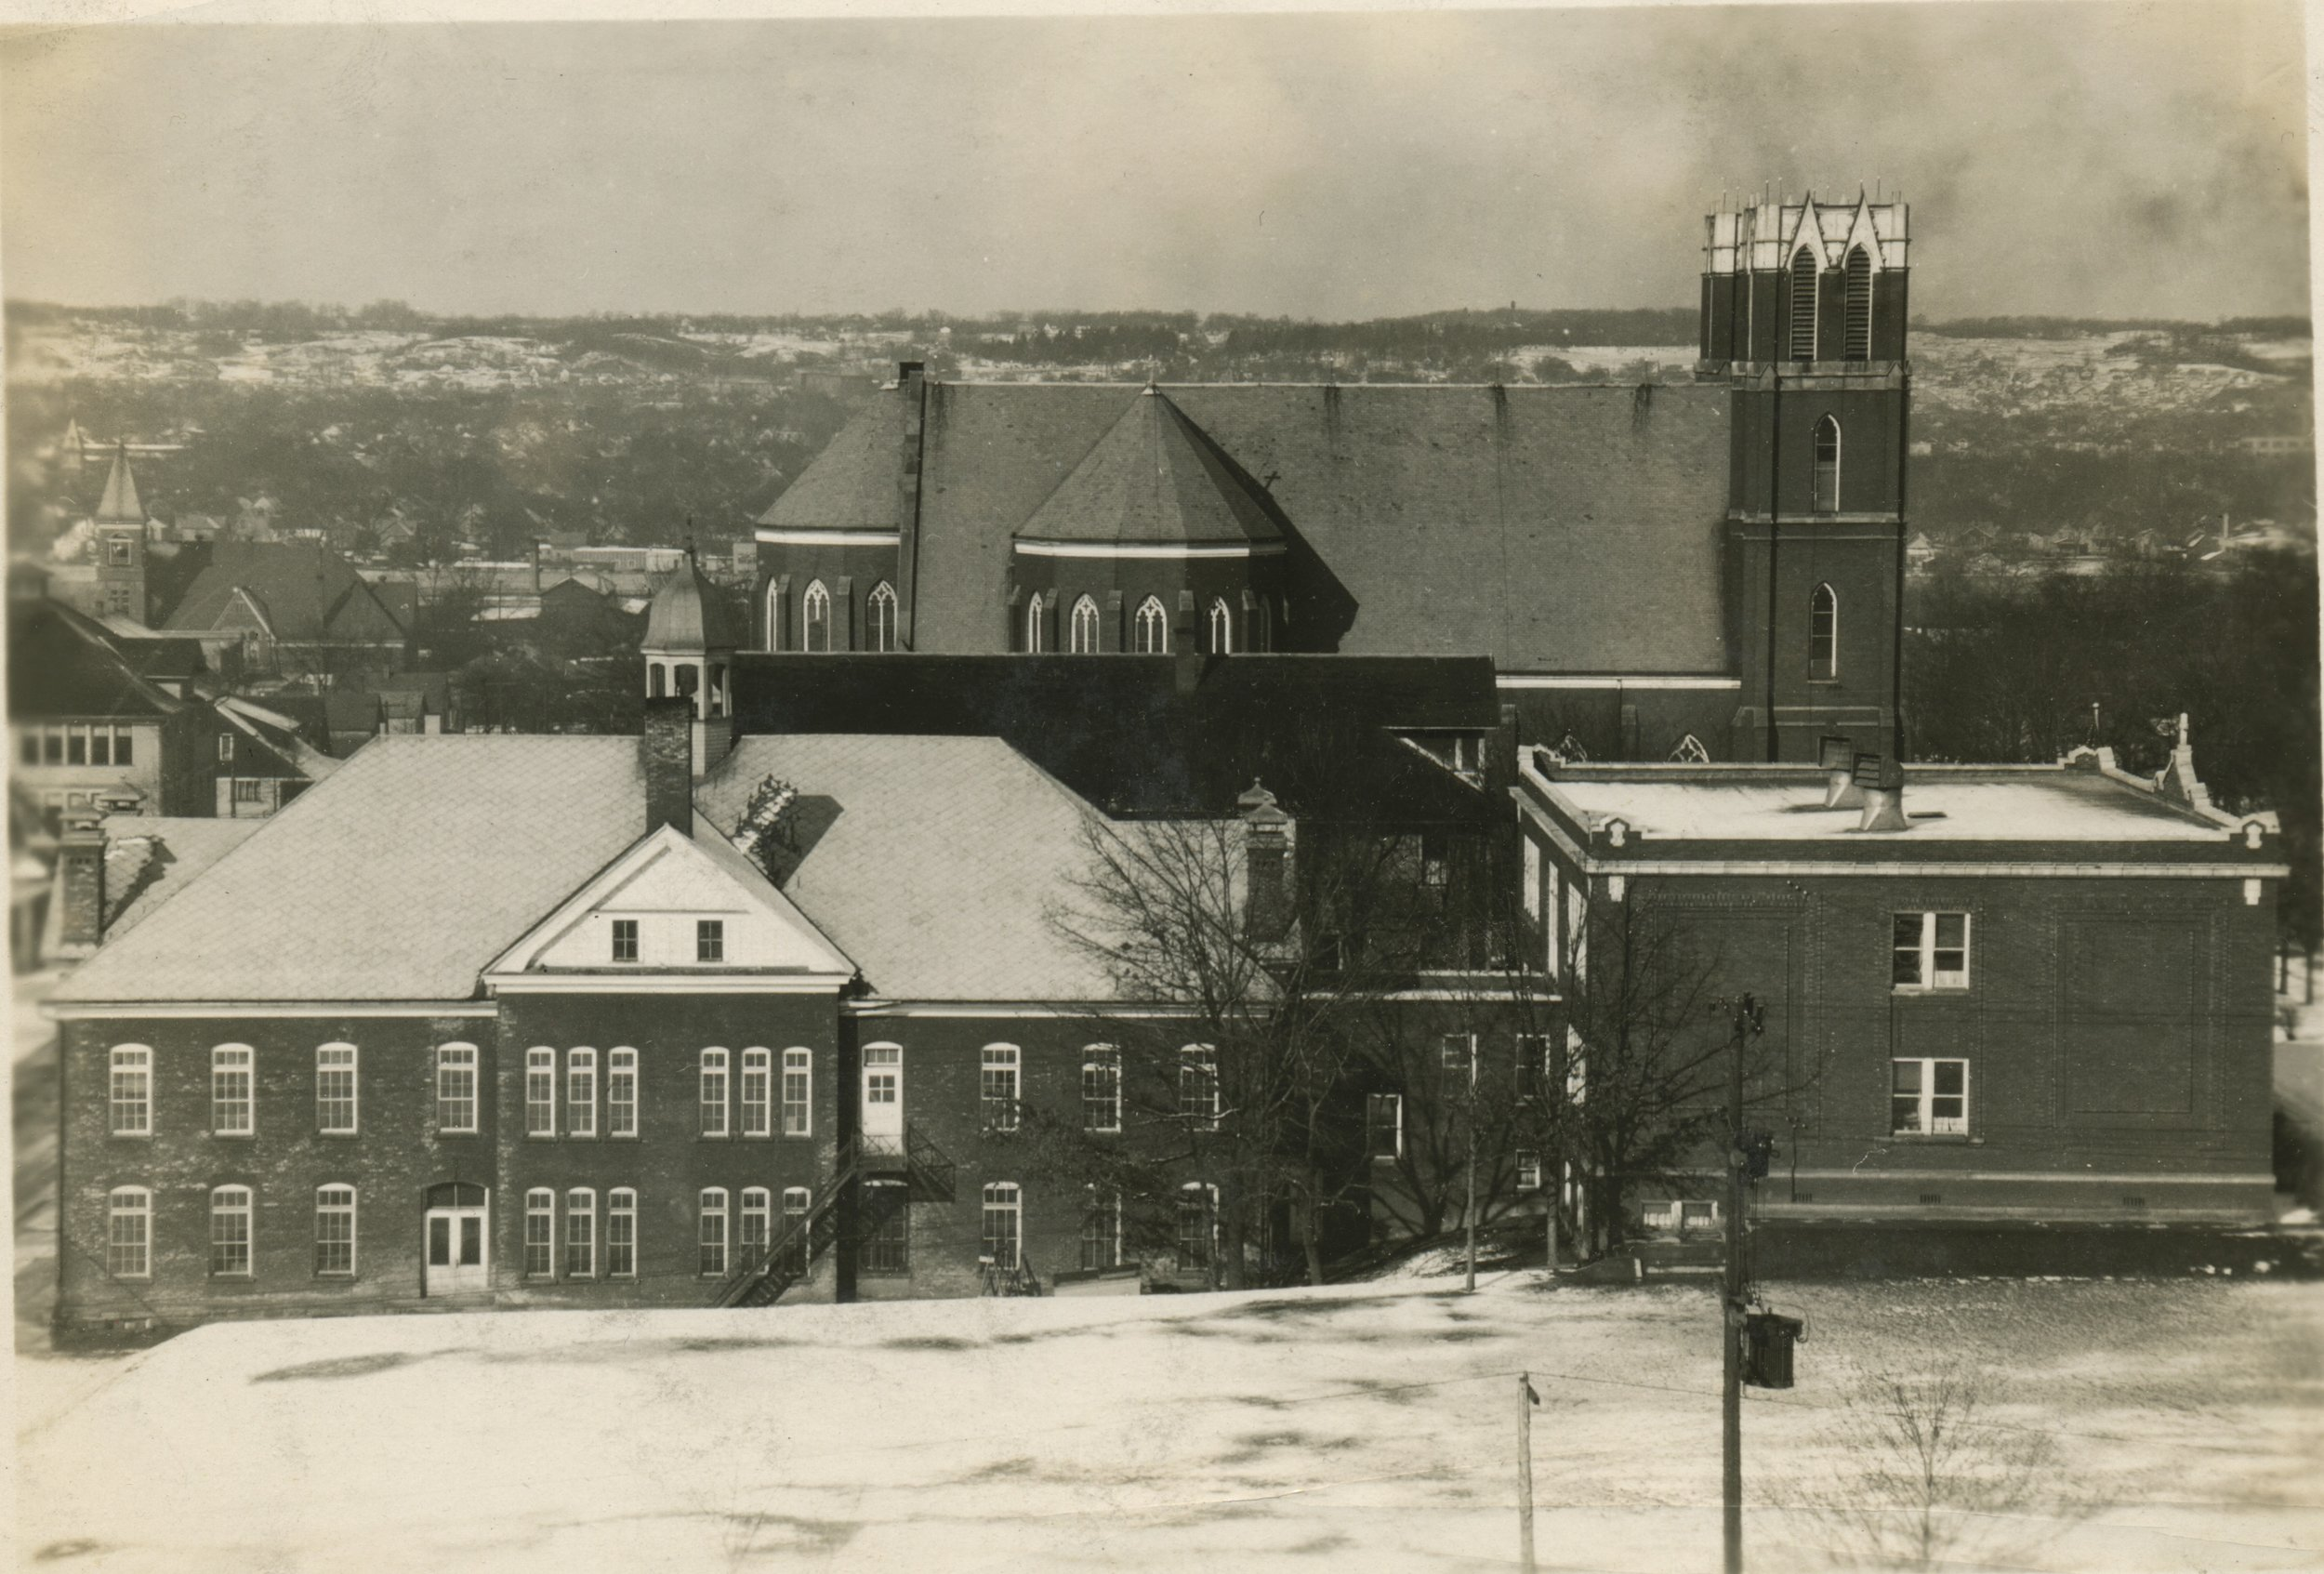 1946 - The necessary repairs, restoration, and renovation to the school were completed. A two-class room prefabricated all-steel building was erected to handle the increase in enrollment.